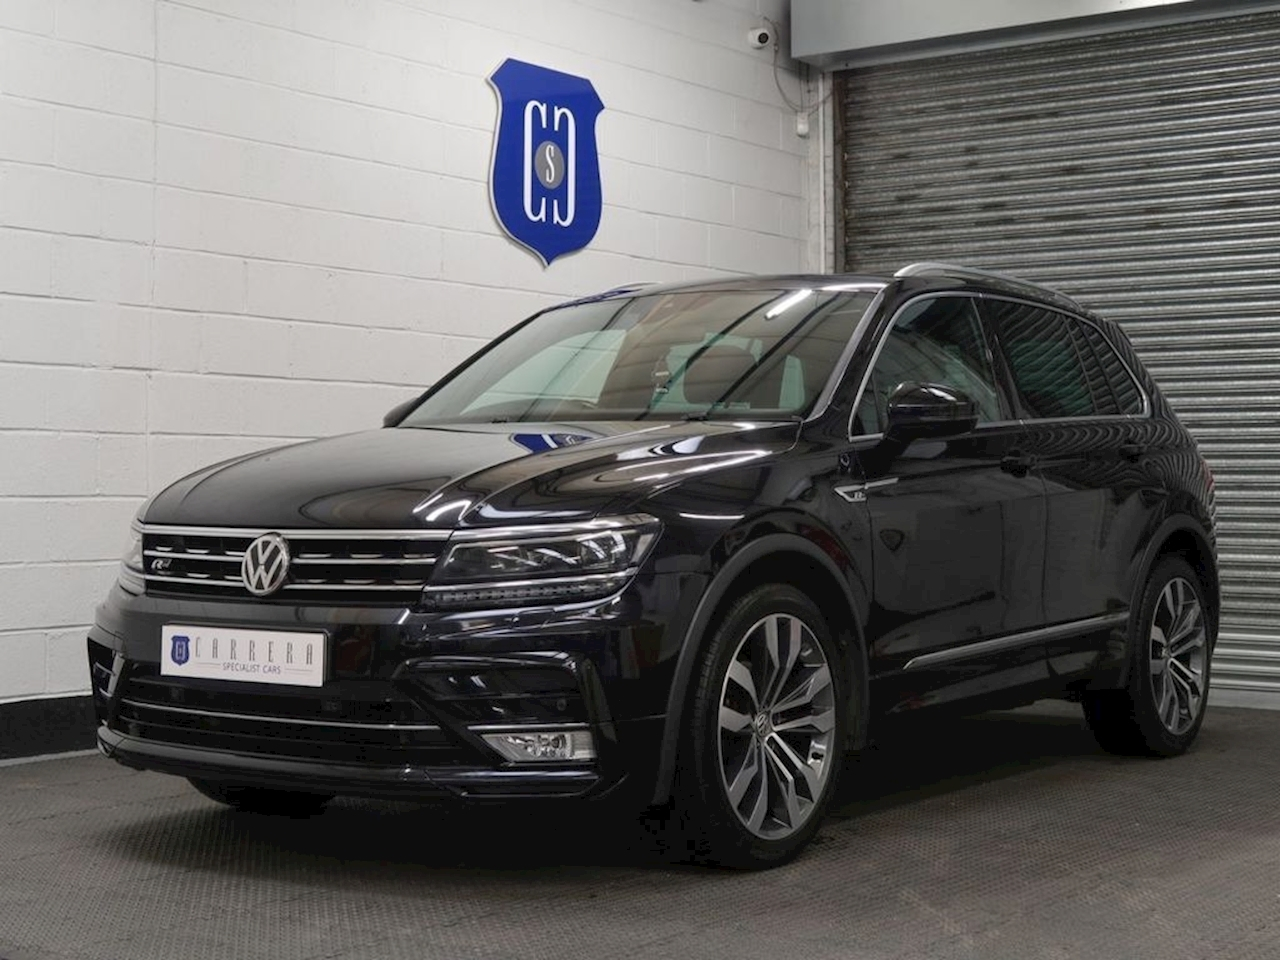 Volkswagen Tiguan R-Line Tdi Bmt 4Motion Estate 2.0 Manual Diesel